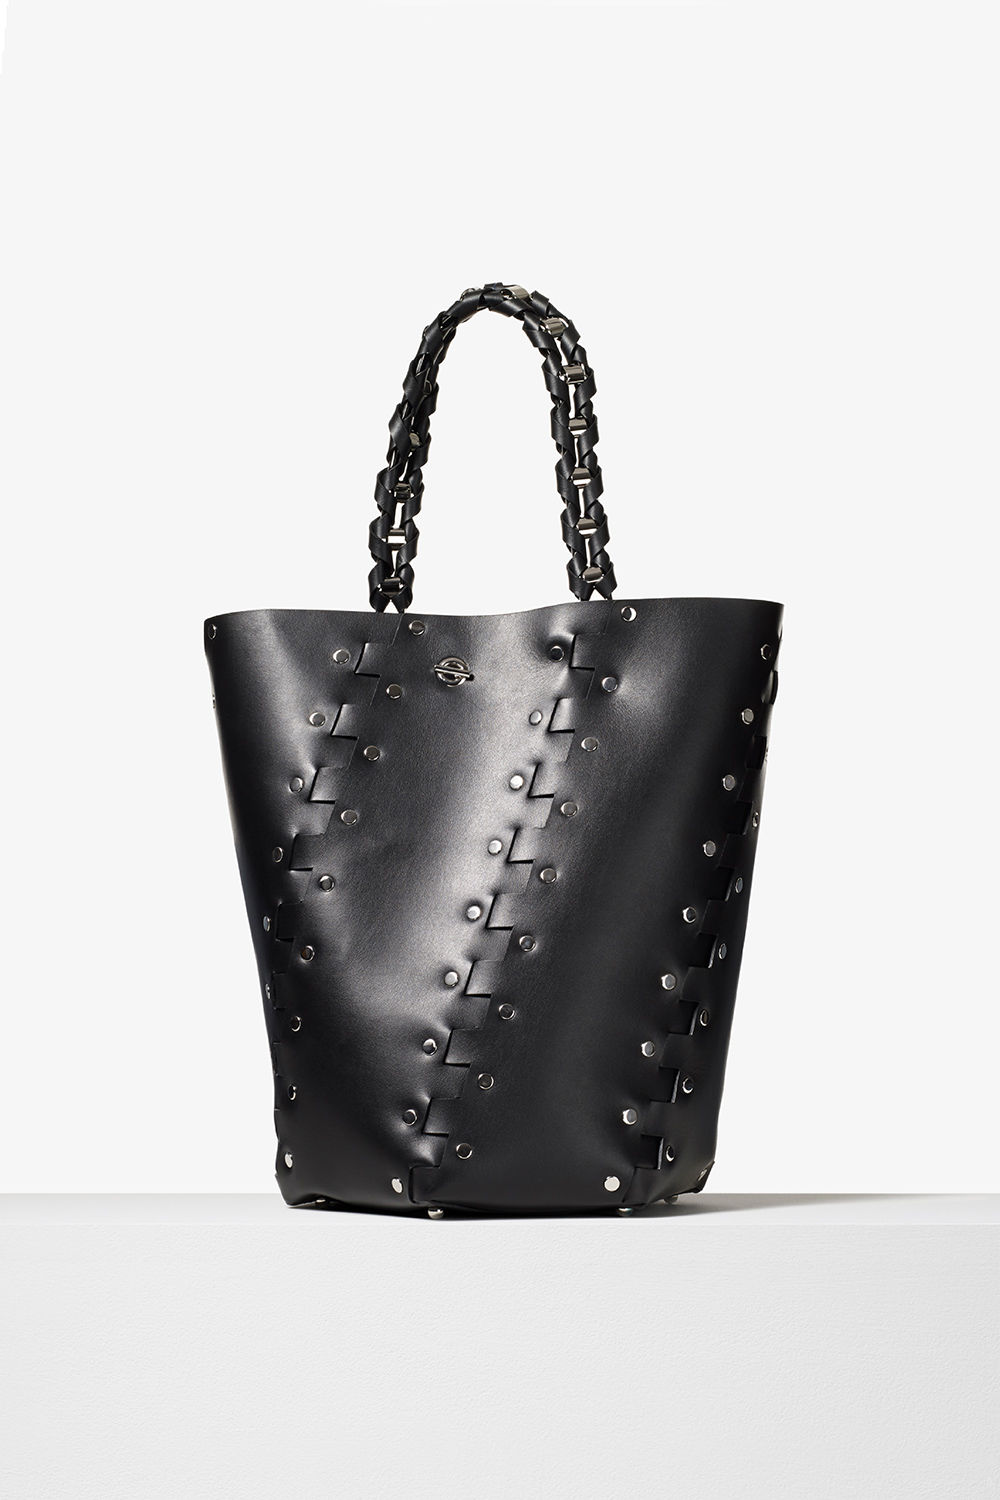 proenza schouler pre fall 2017 black studded hinged large hex bucket bag